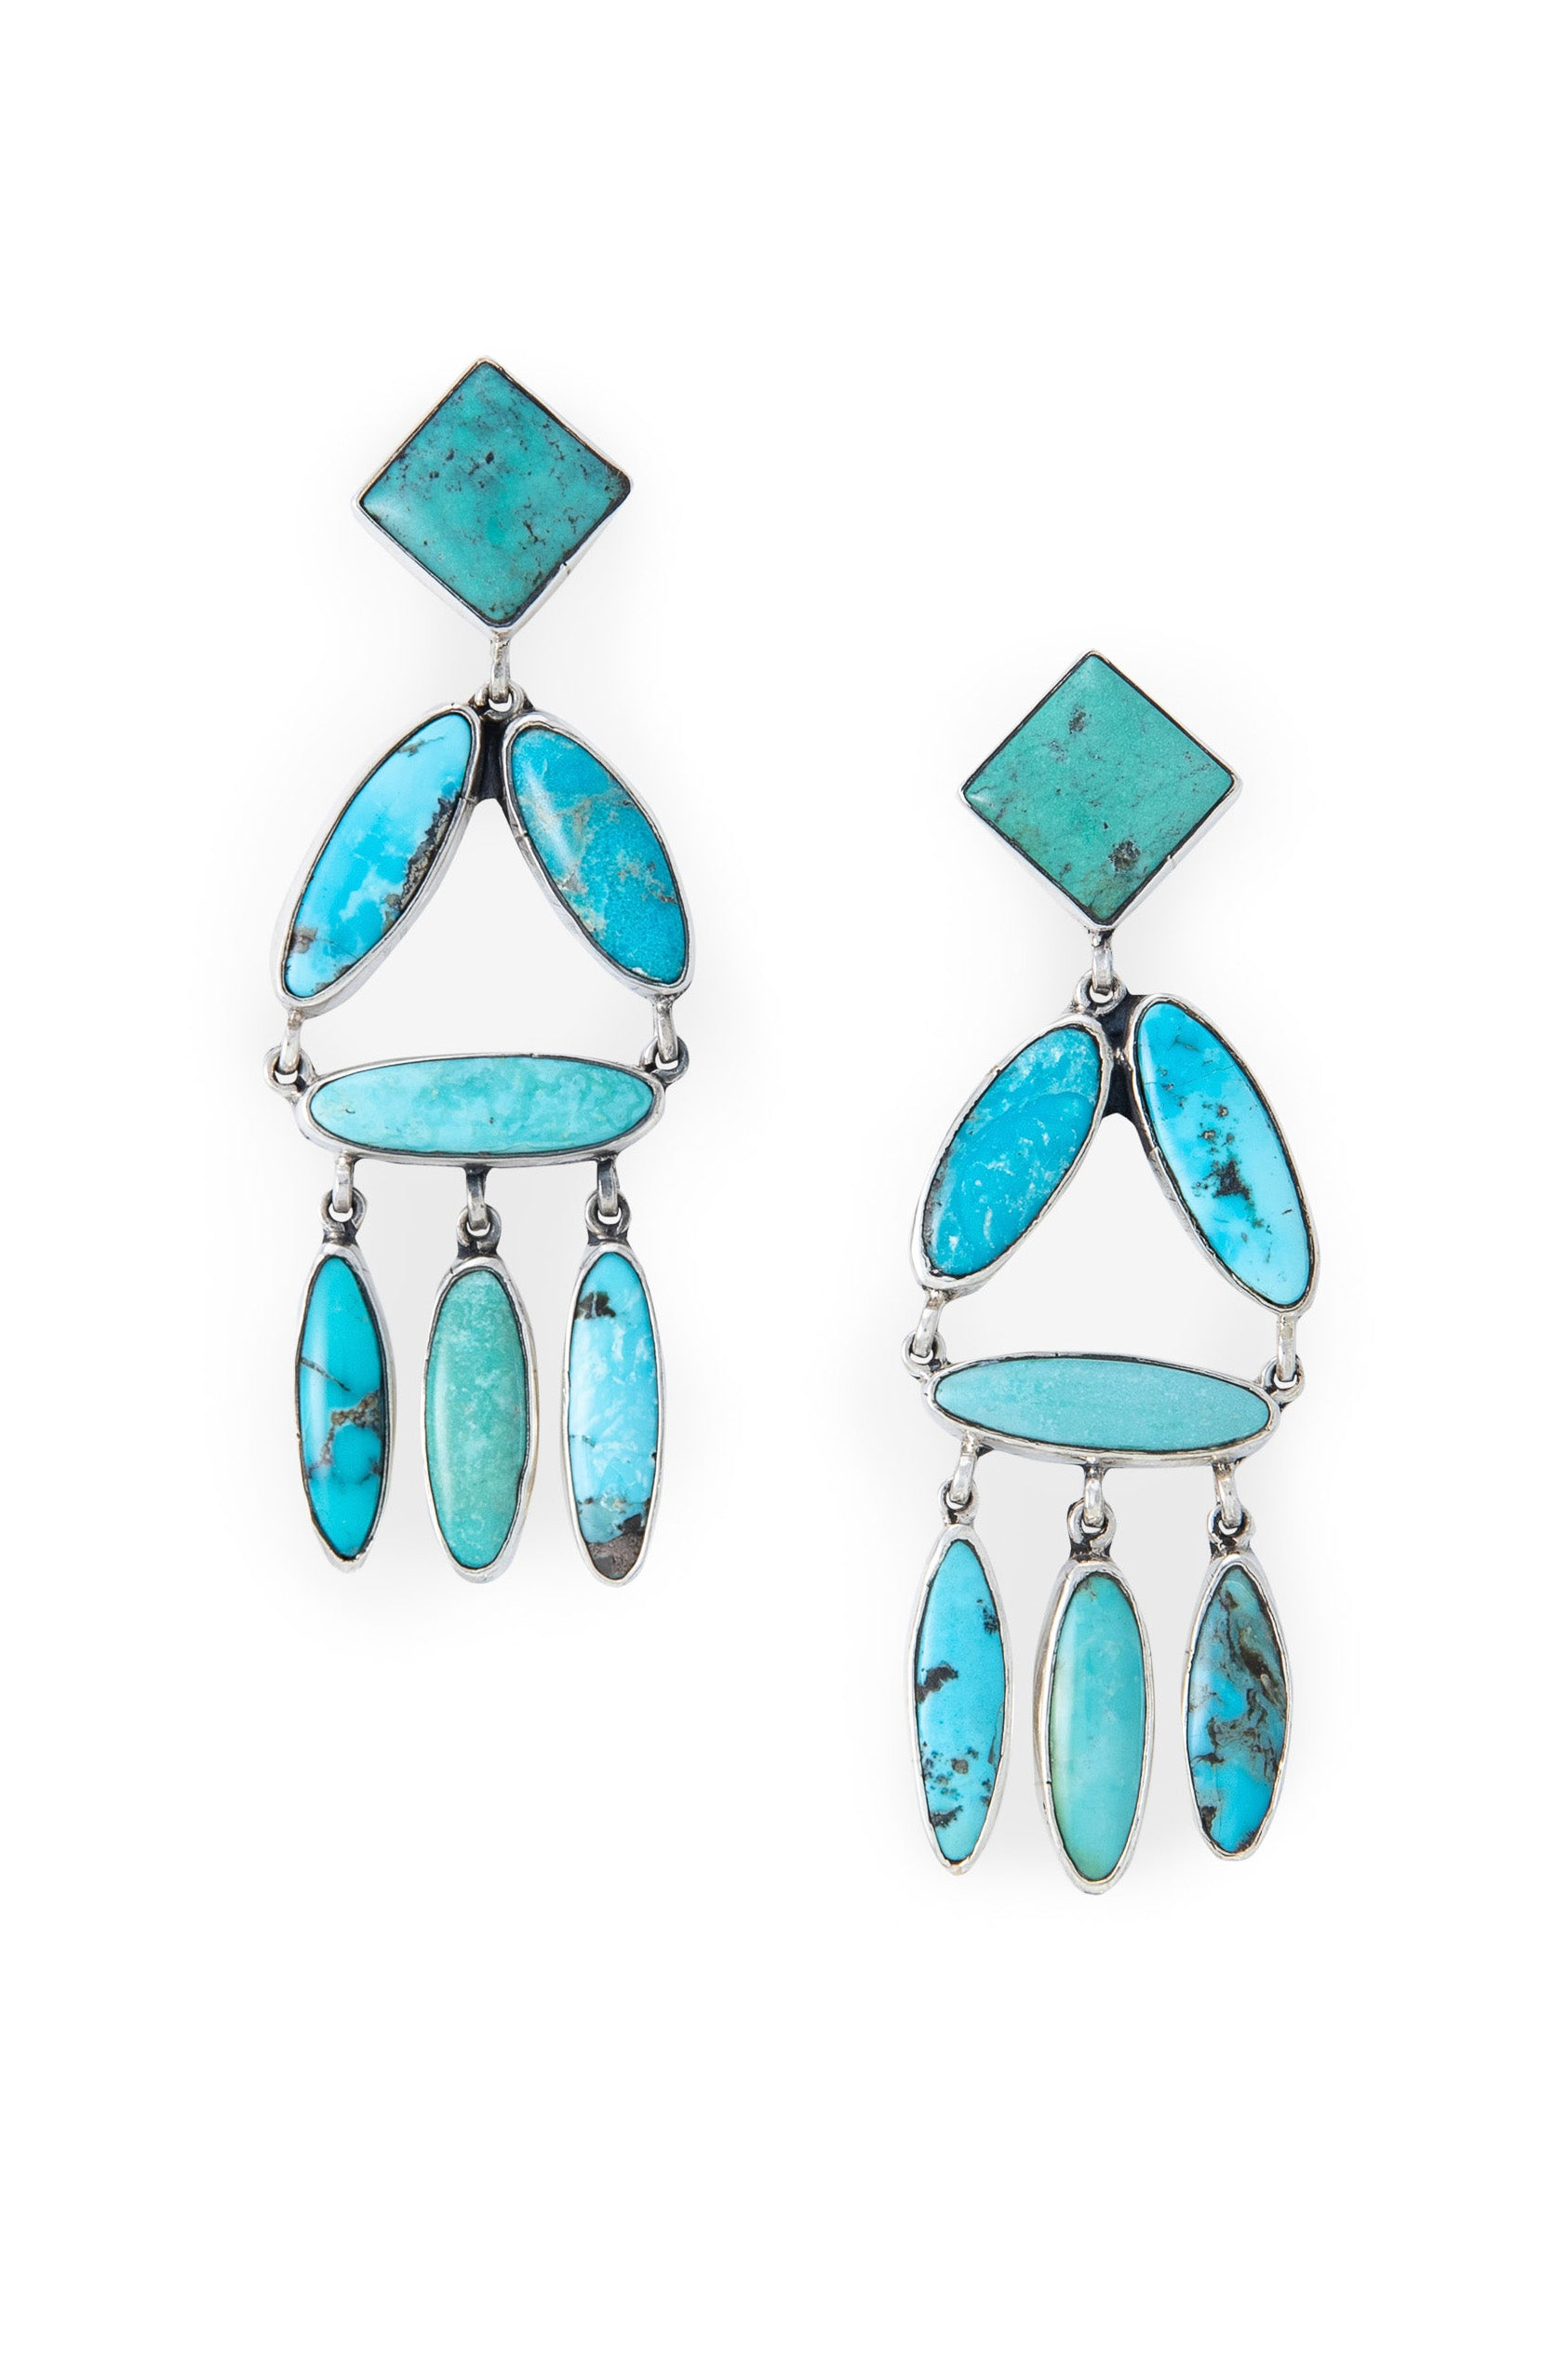 Earrings, Chandelier, Turquoise, Federico, Comtemporary,533